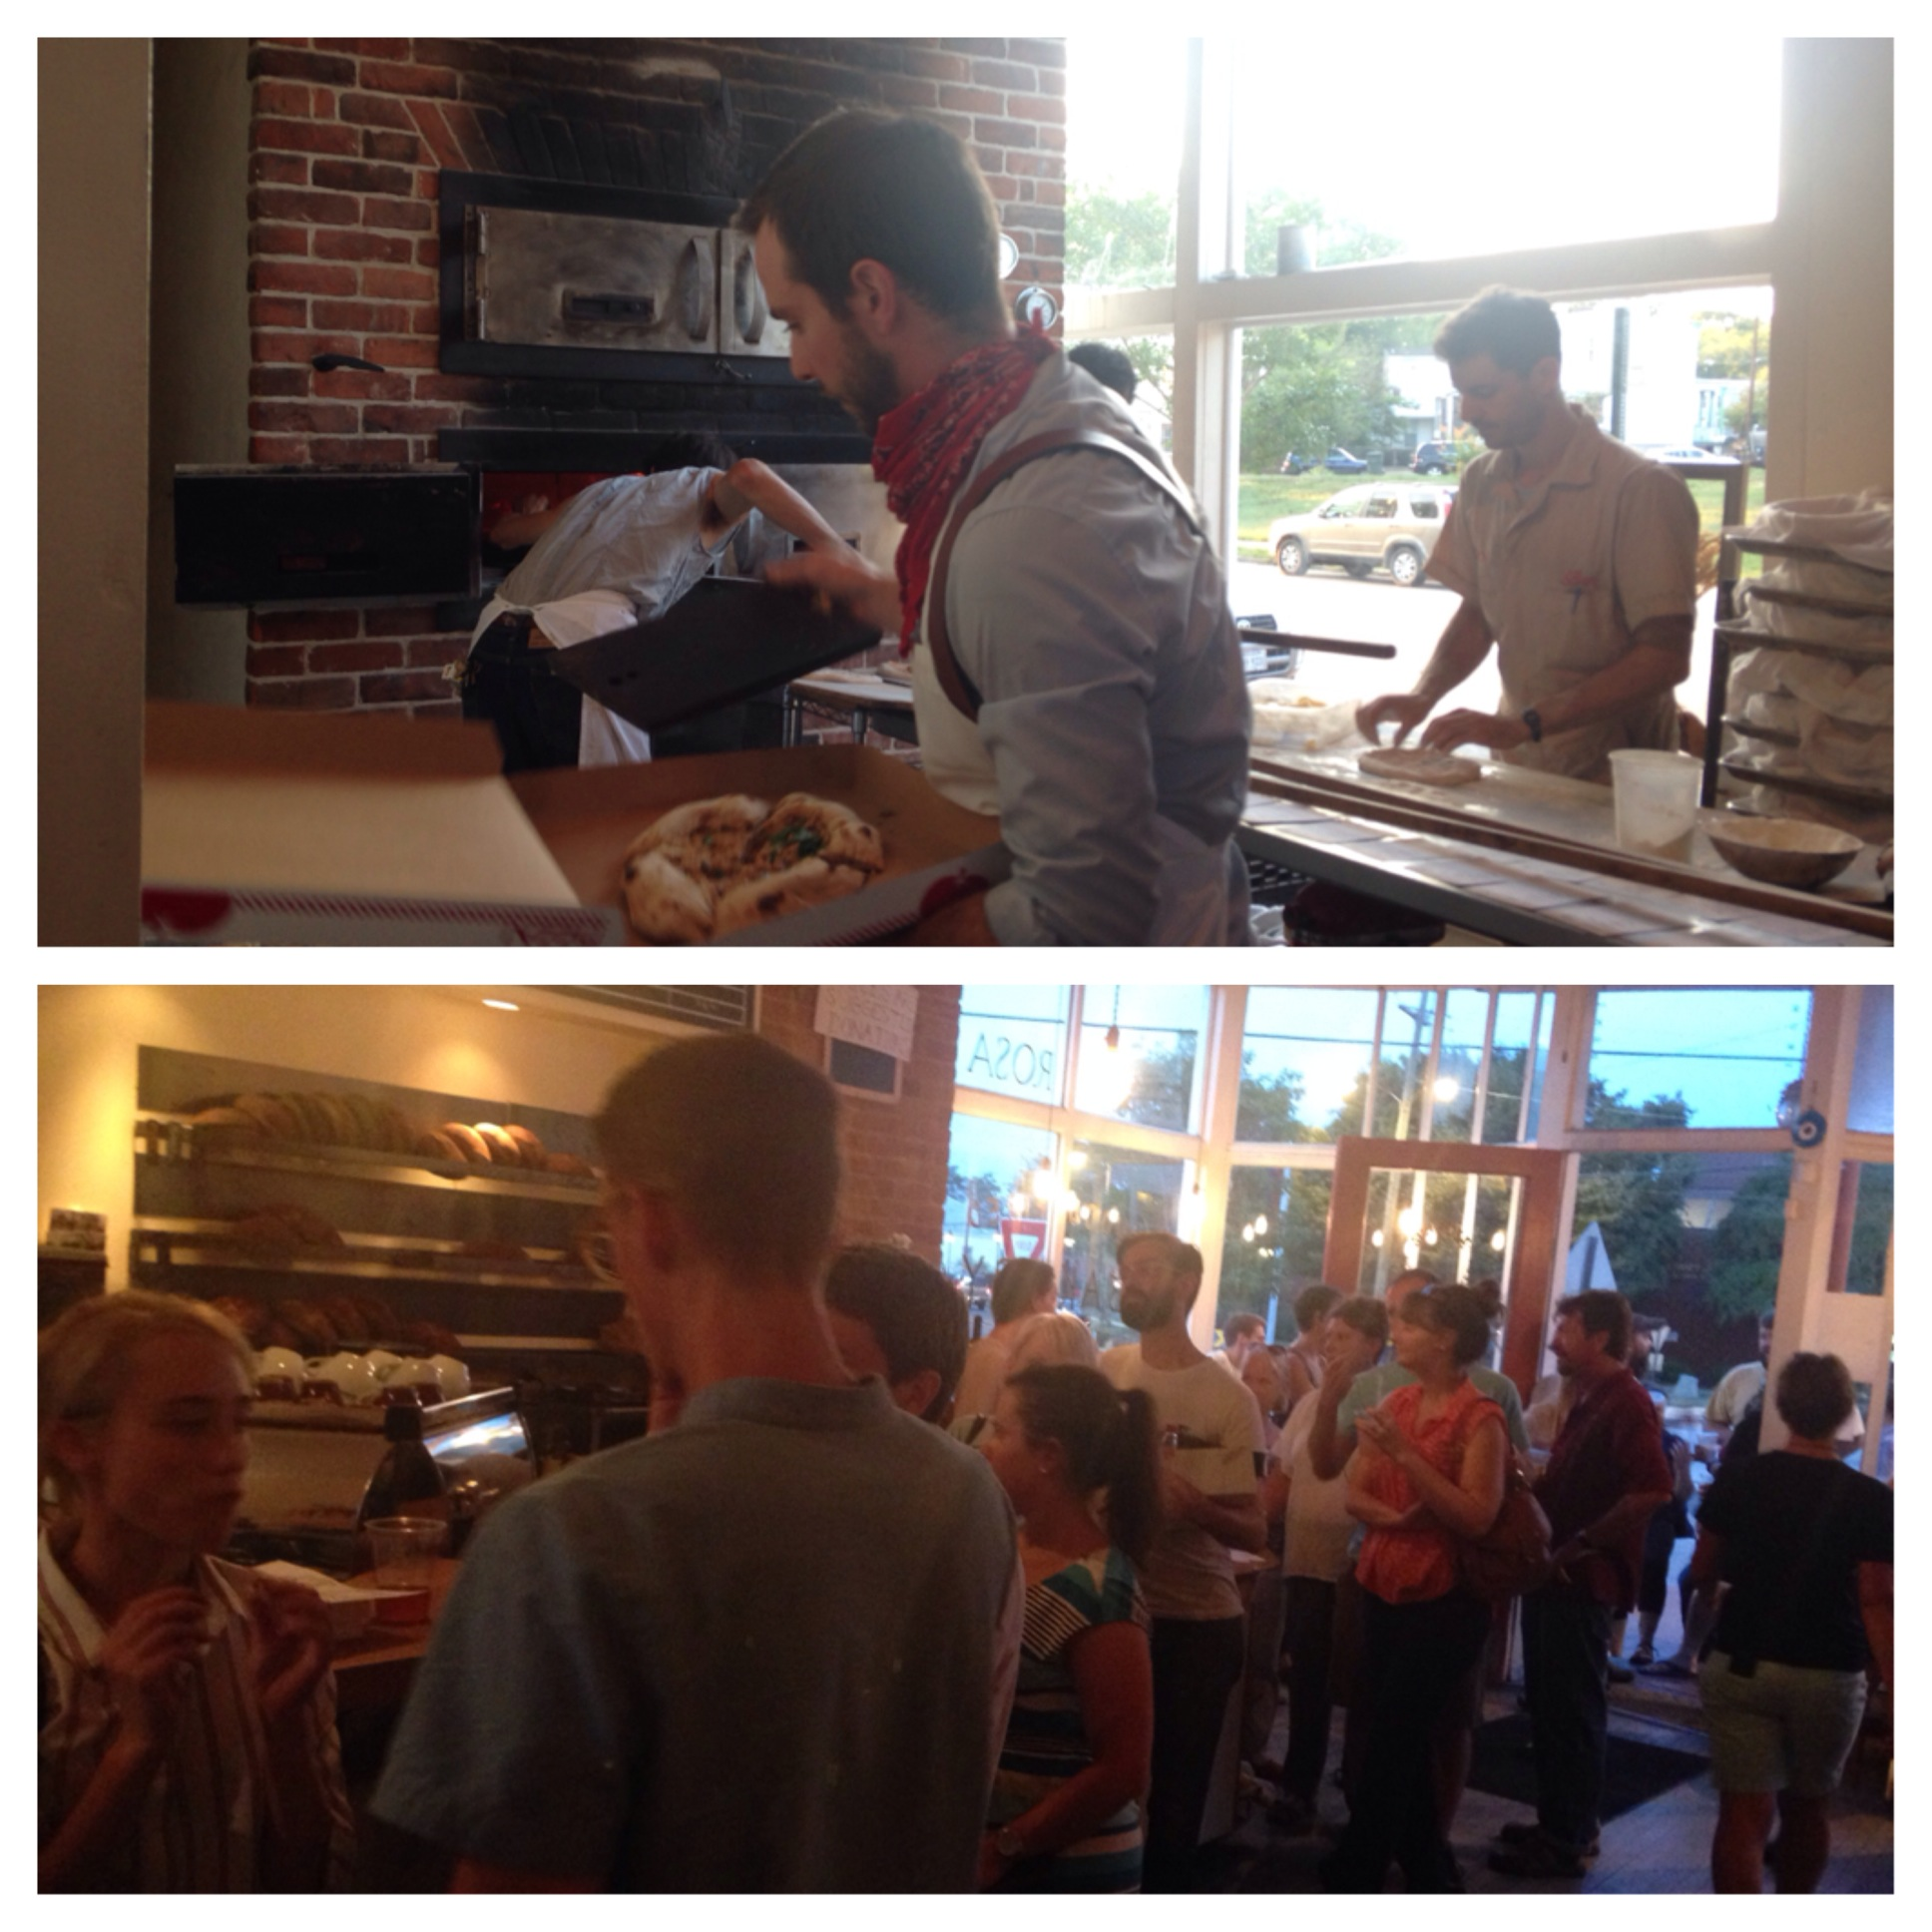 A big thank you to Sub Rosa Bakery and all of you who came out to the pizza pop up event on Sept 21st.